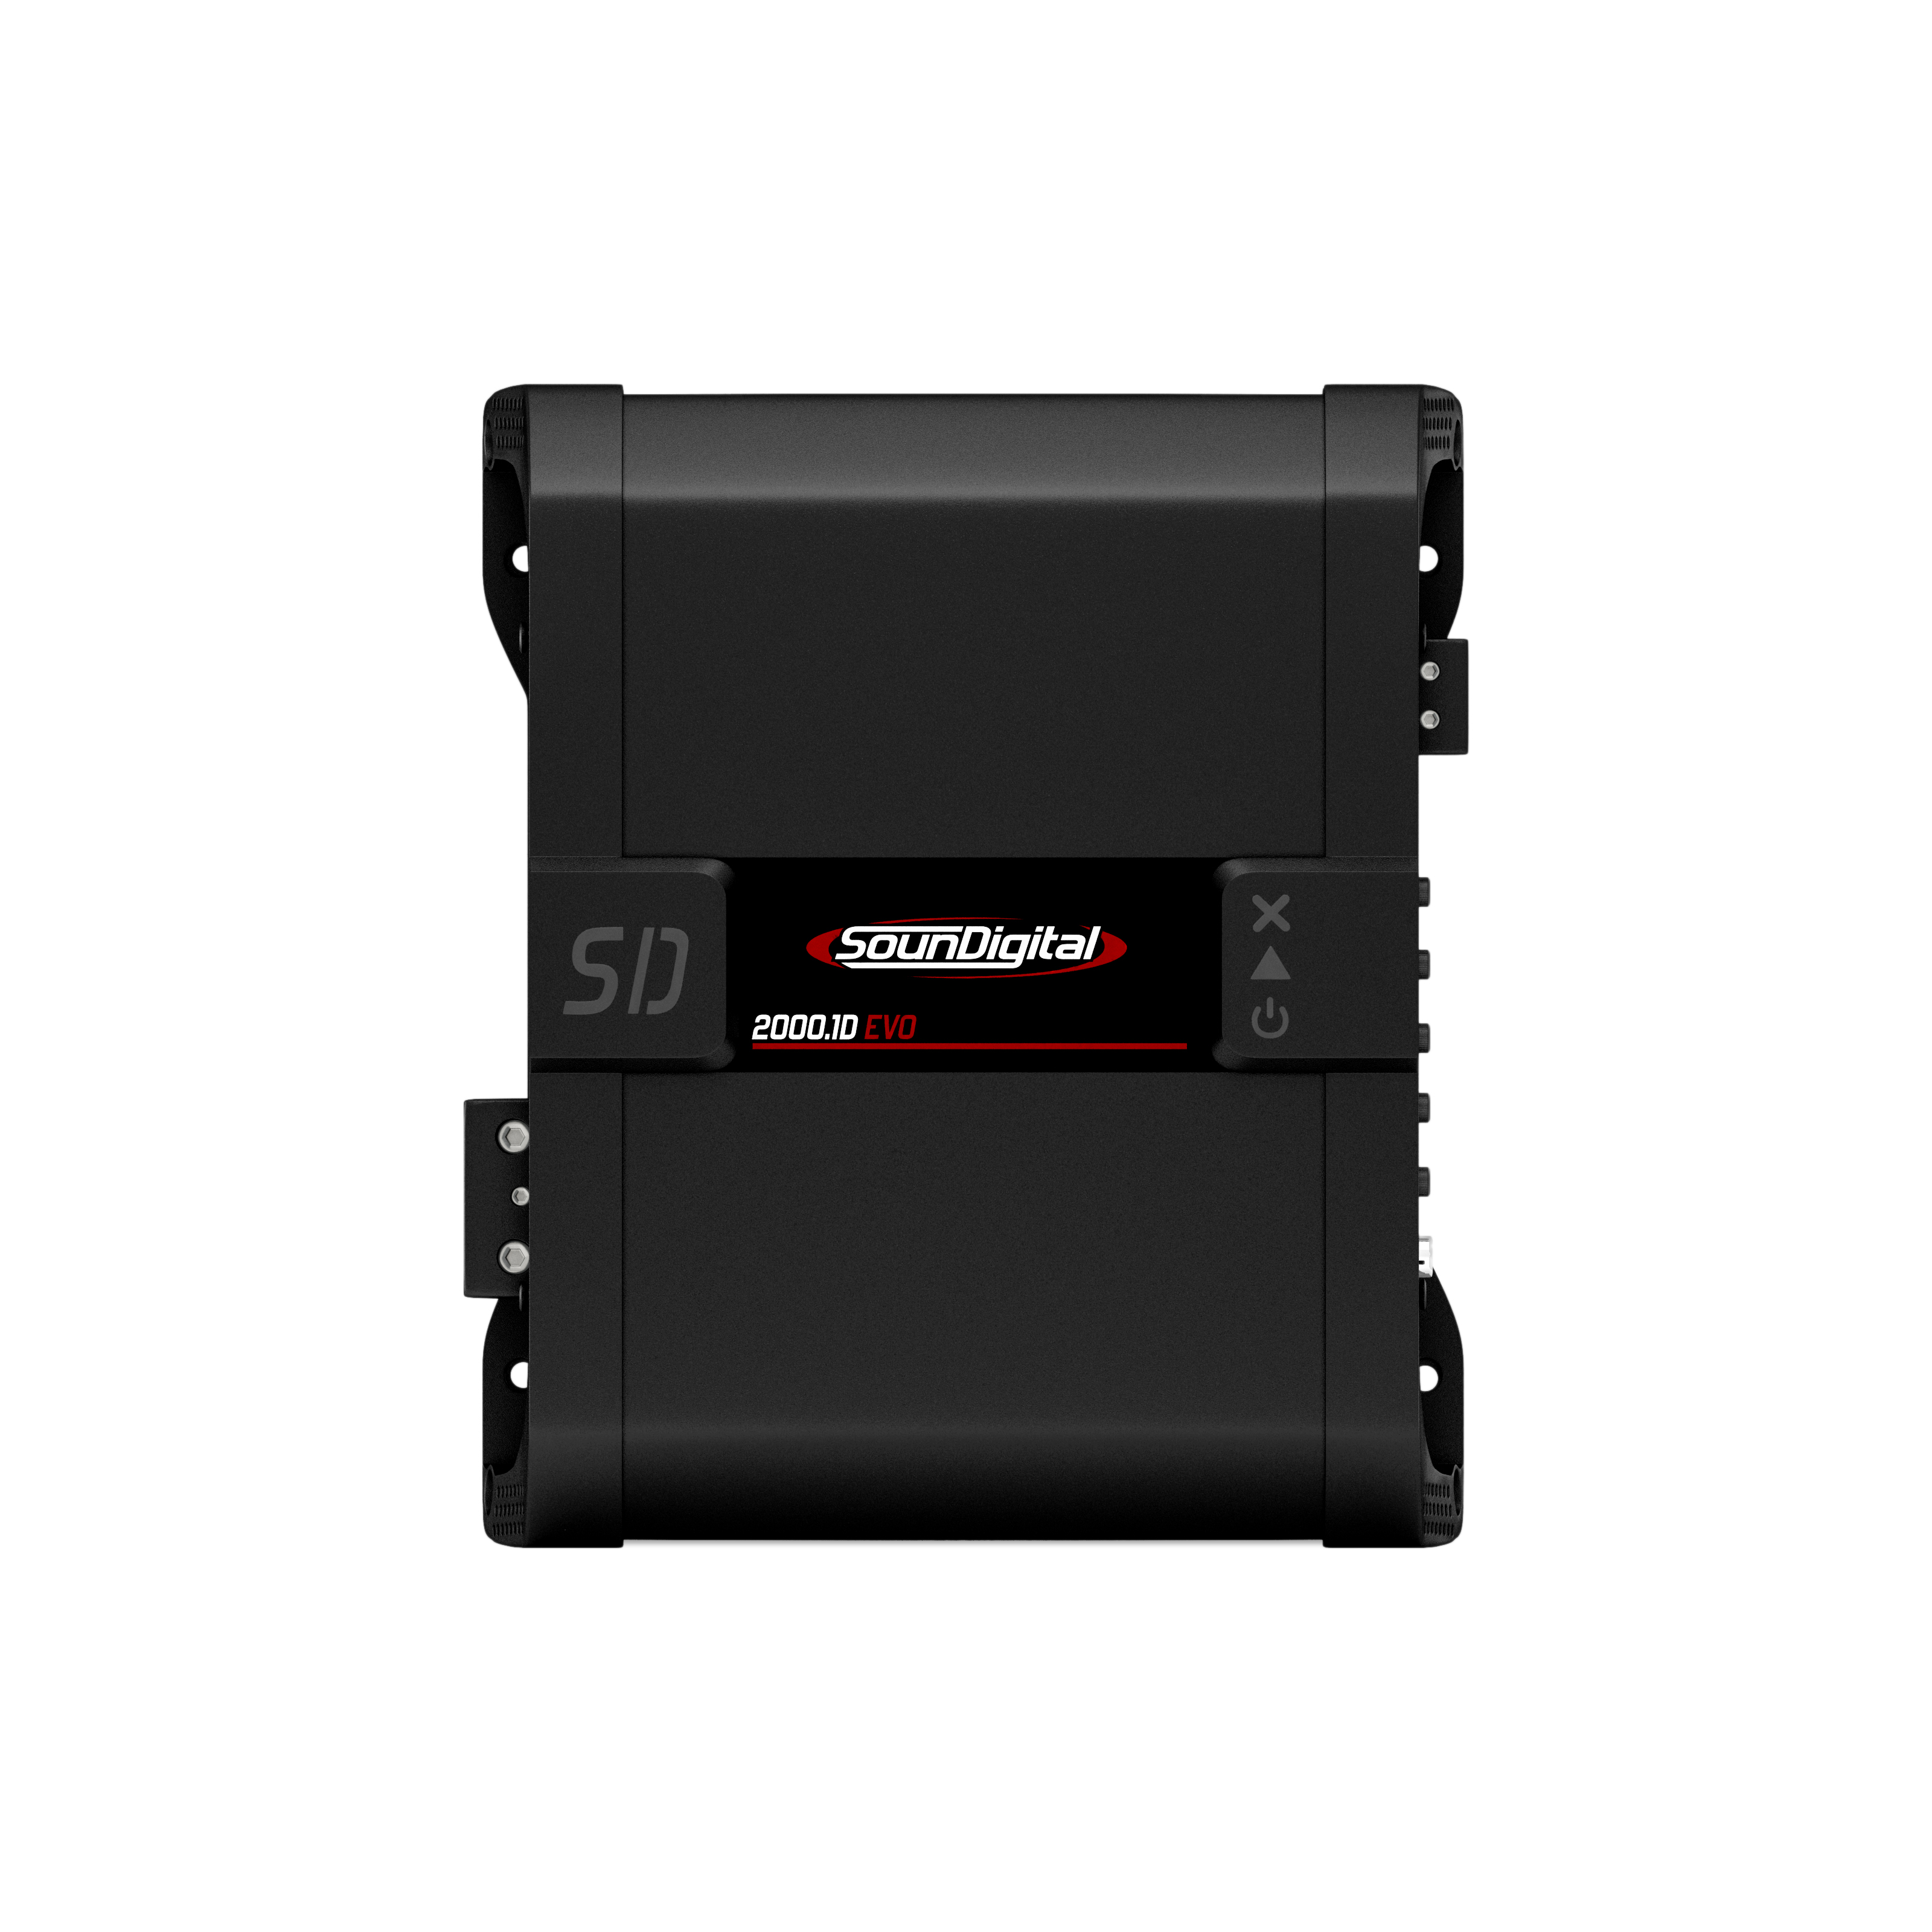 Soundigital 2000.1D EVO 2,000W Rms Fullrange Mono Amplifier